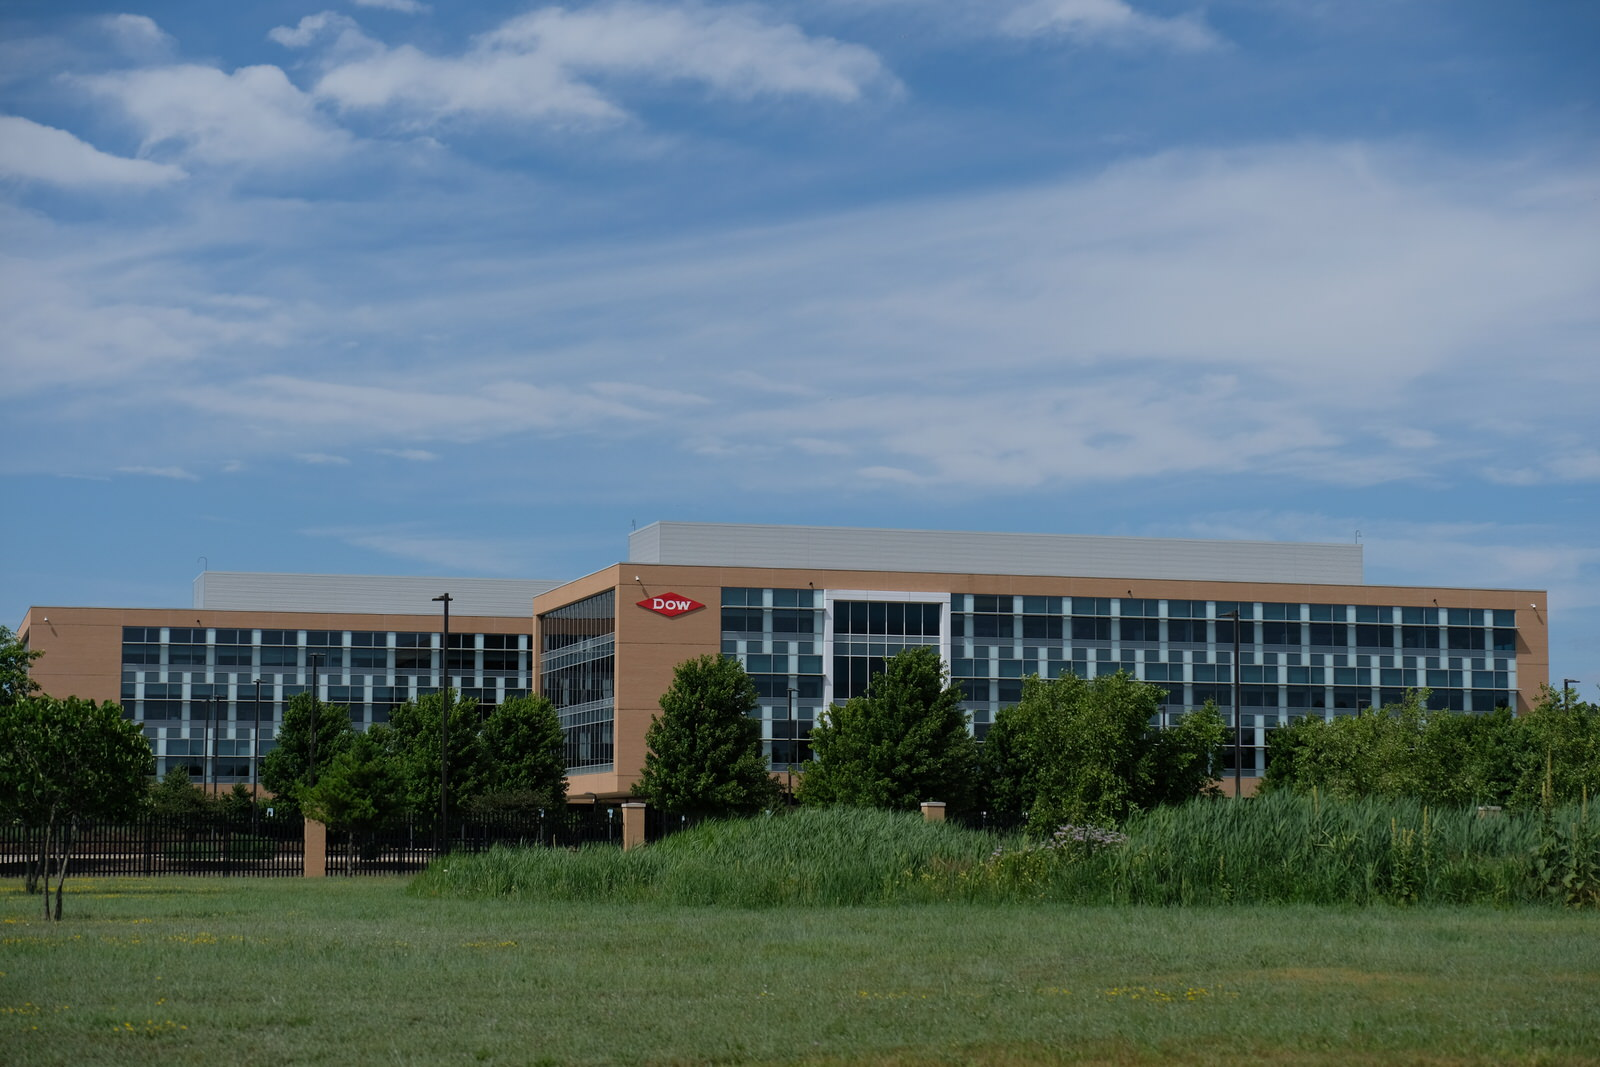 Dow Chemical's corporate headquarters in Midland, Michigan.